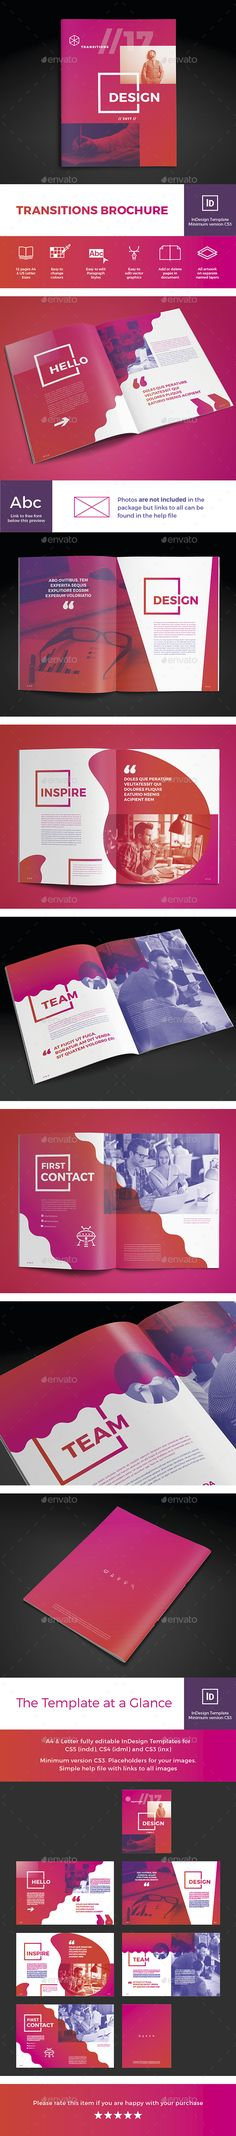 Transitions Brochure — InDesign INDD #graphics tablet #creative team • Download ➝ https://graphicriver.net/item/transitions-brochure/19478229?ref=pxcr